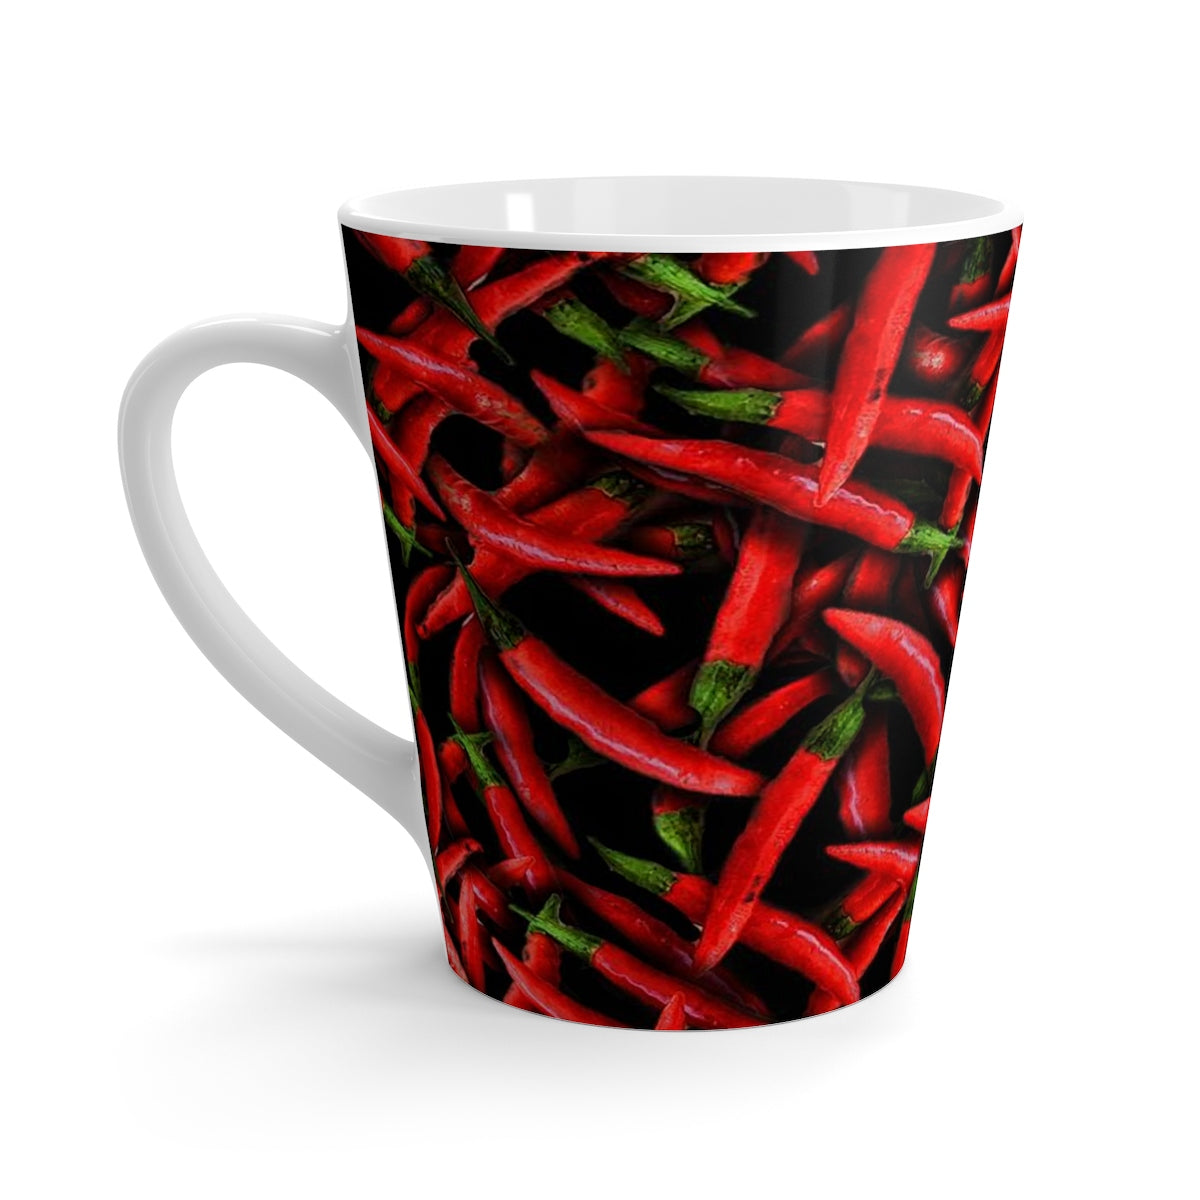 Red Chili Peppers Latte mug